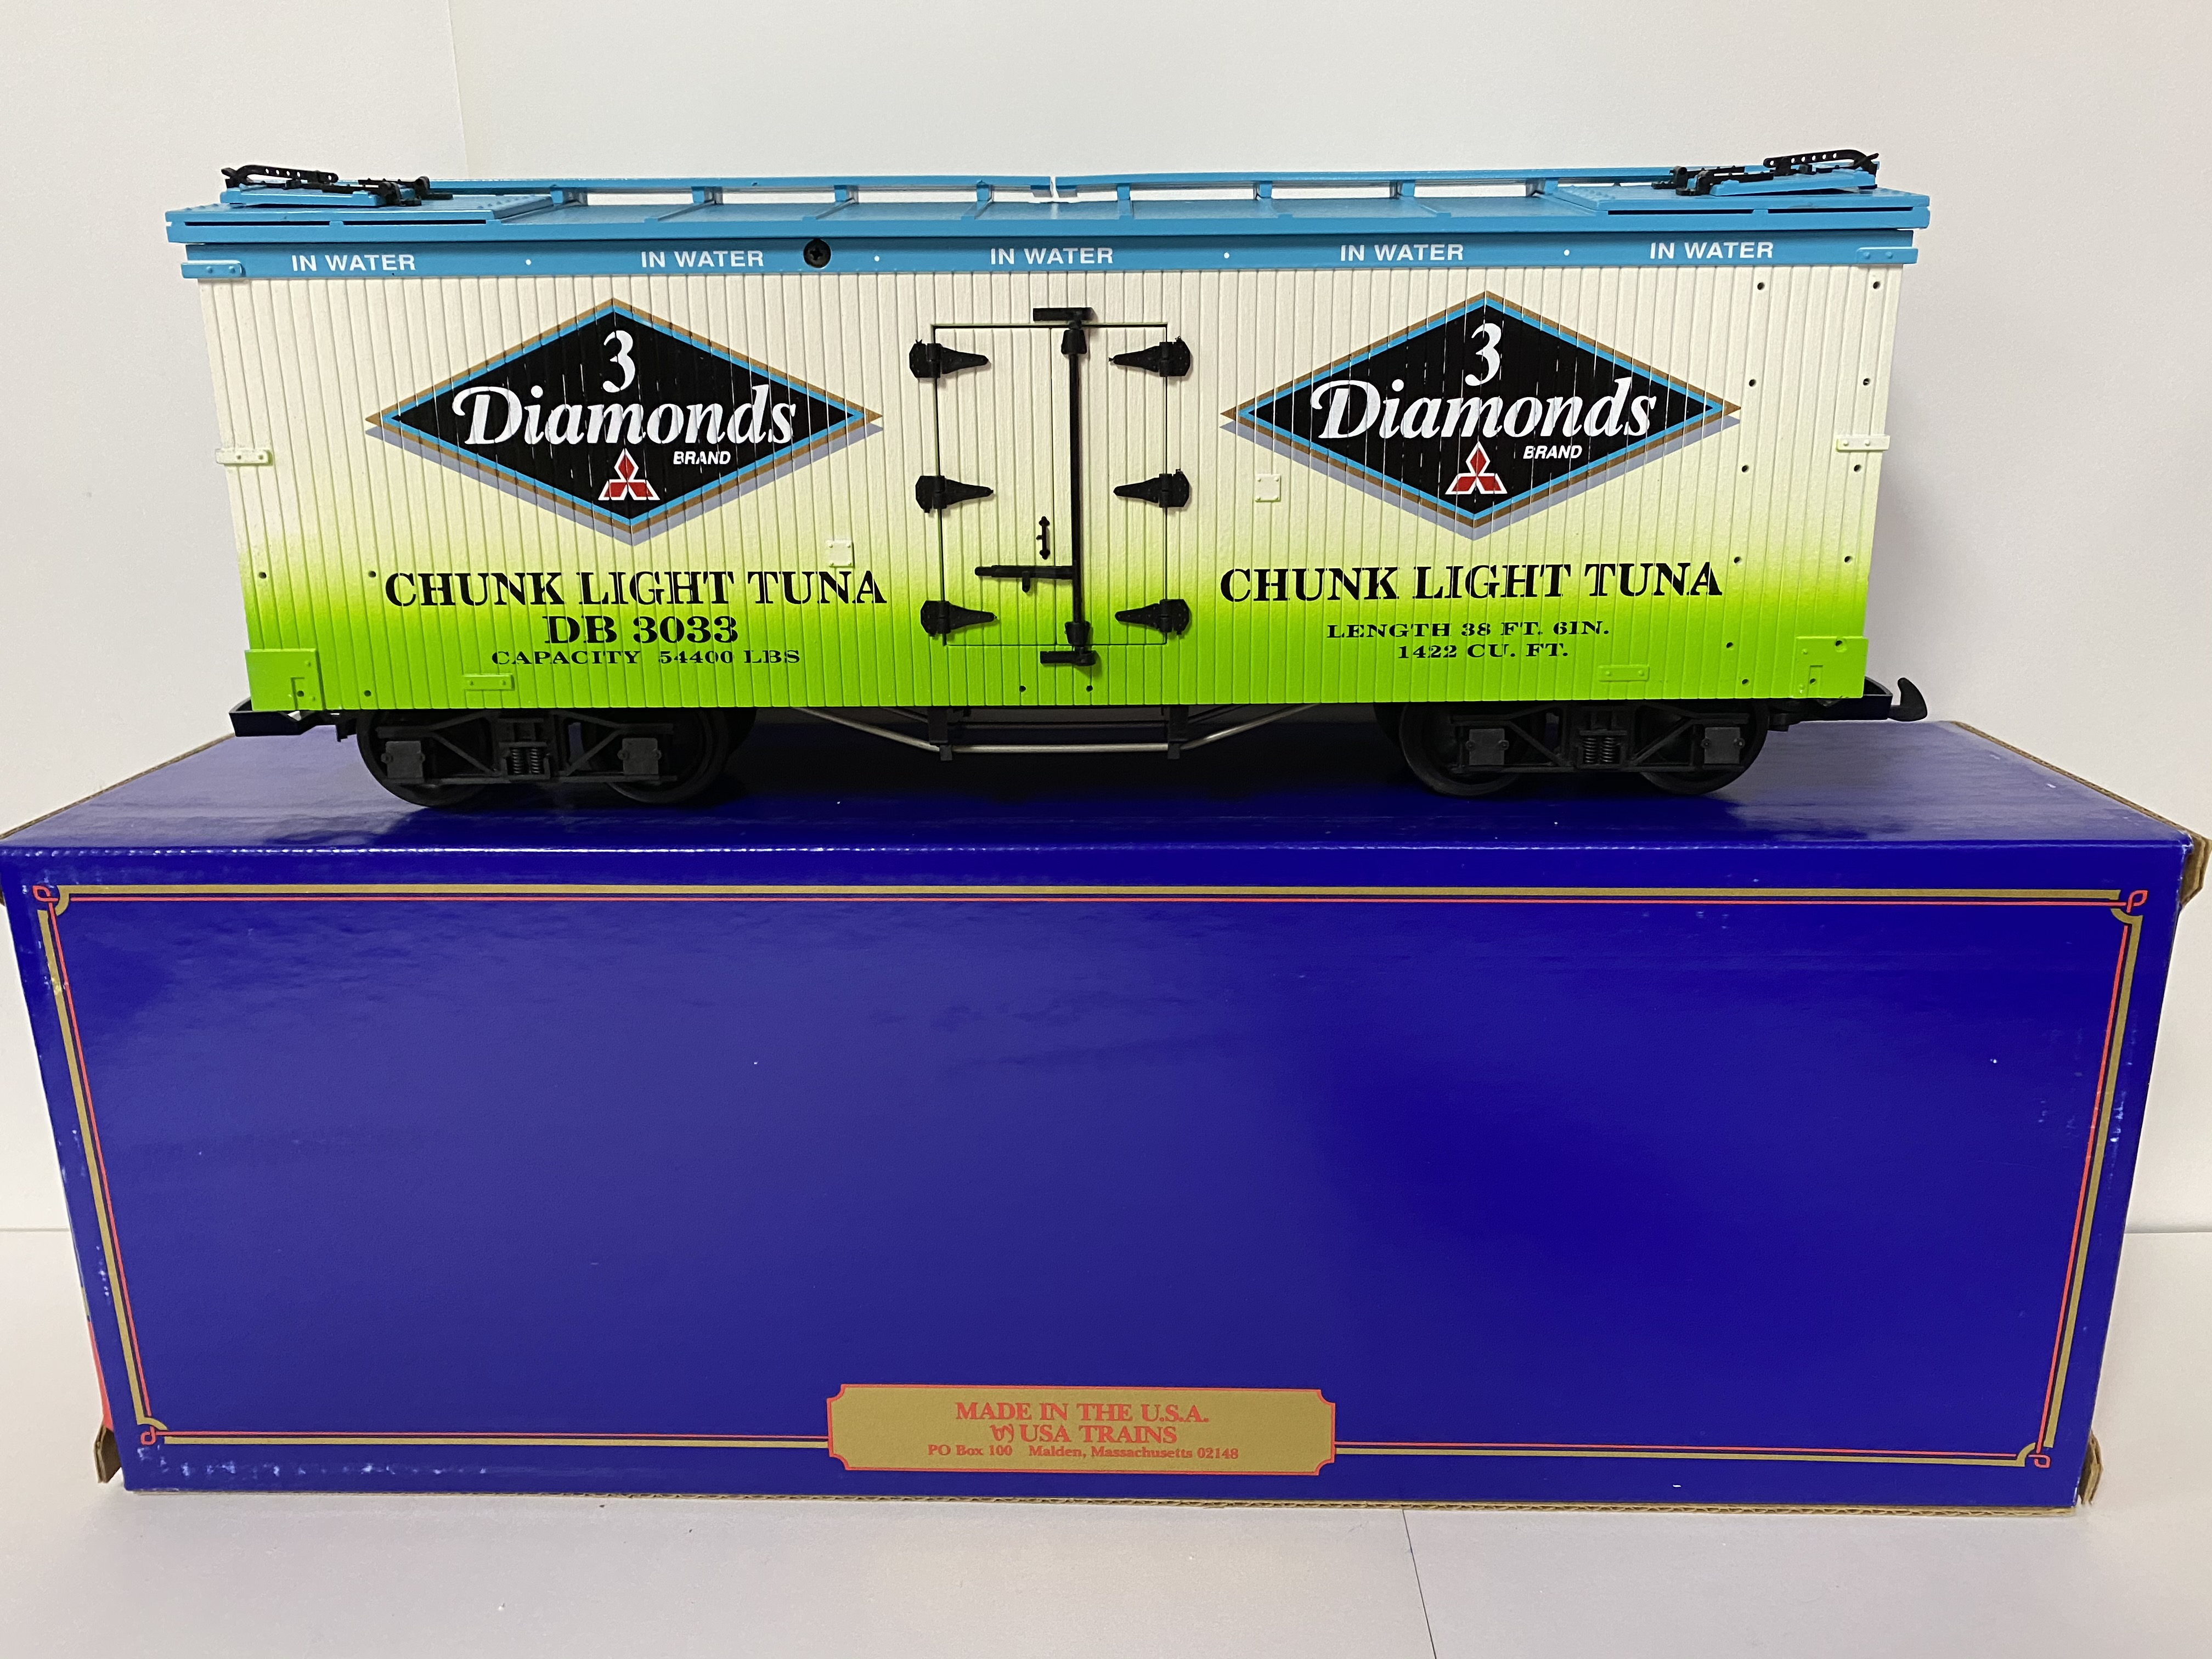 3 Diamonds Reefer (USA Trains 16006)